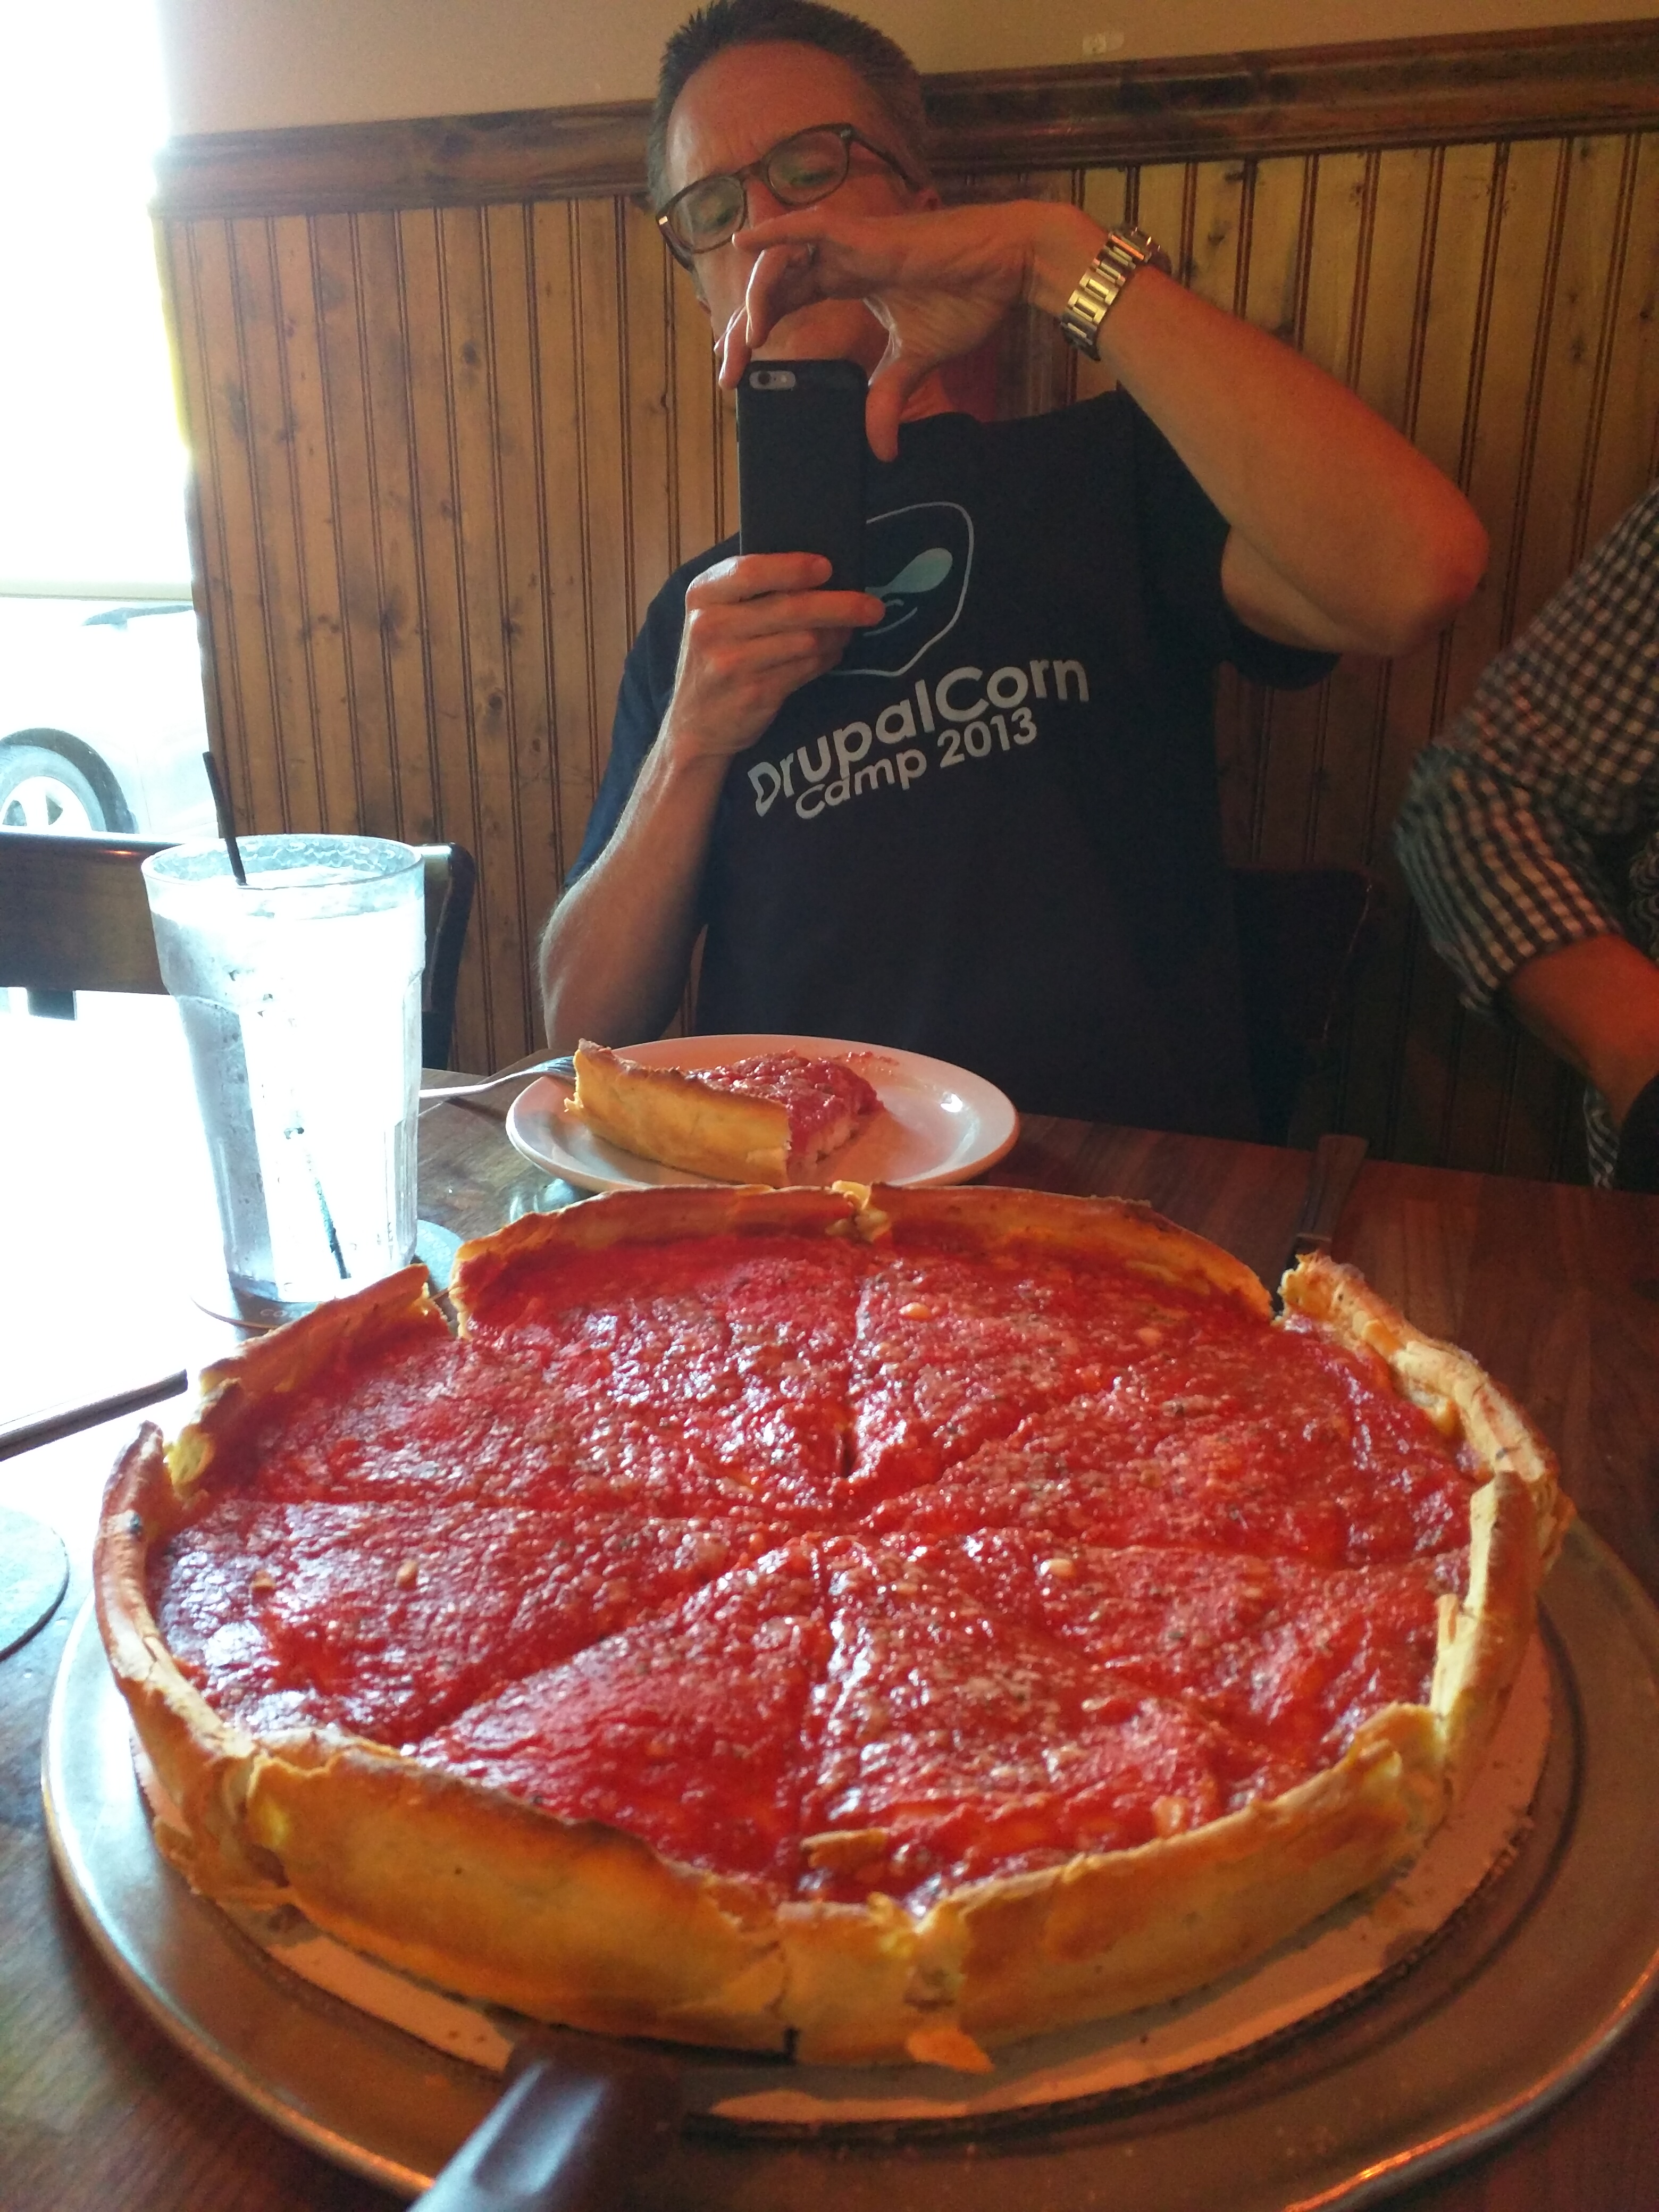 Chicago-style pizza in Iowa City